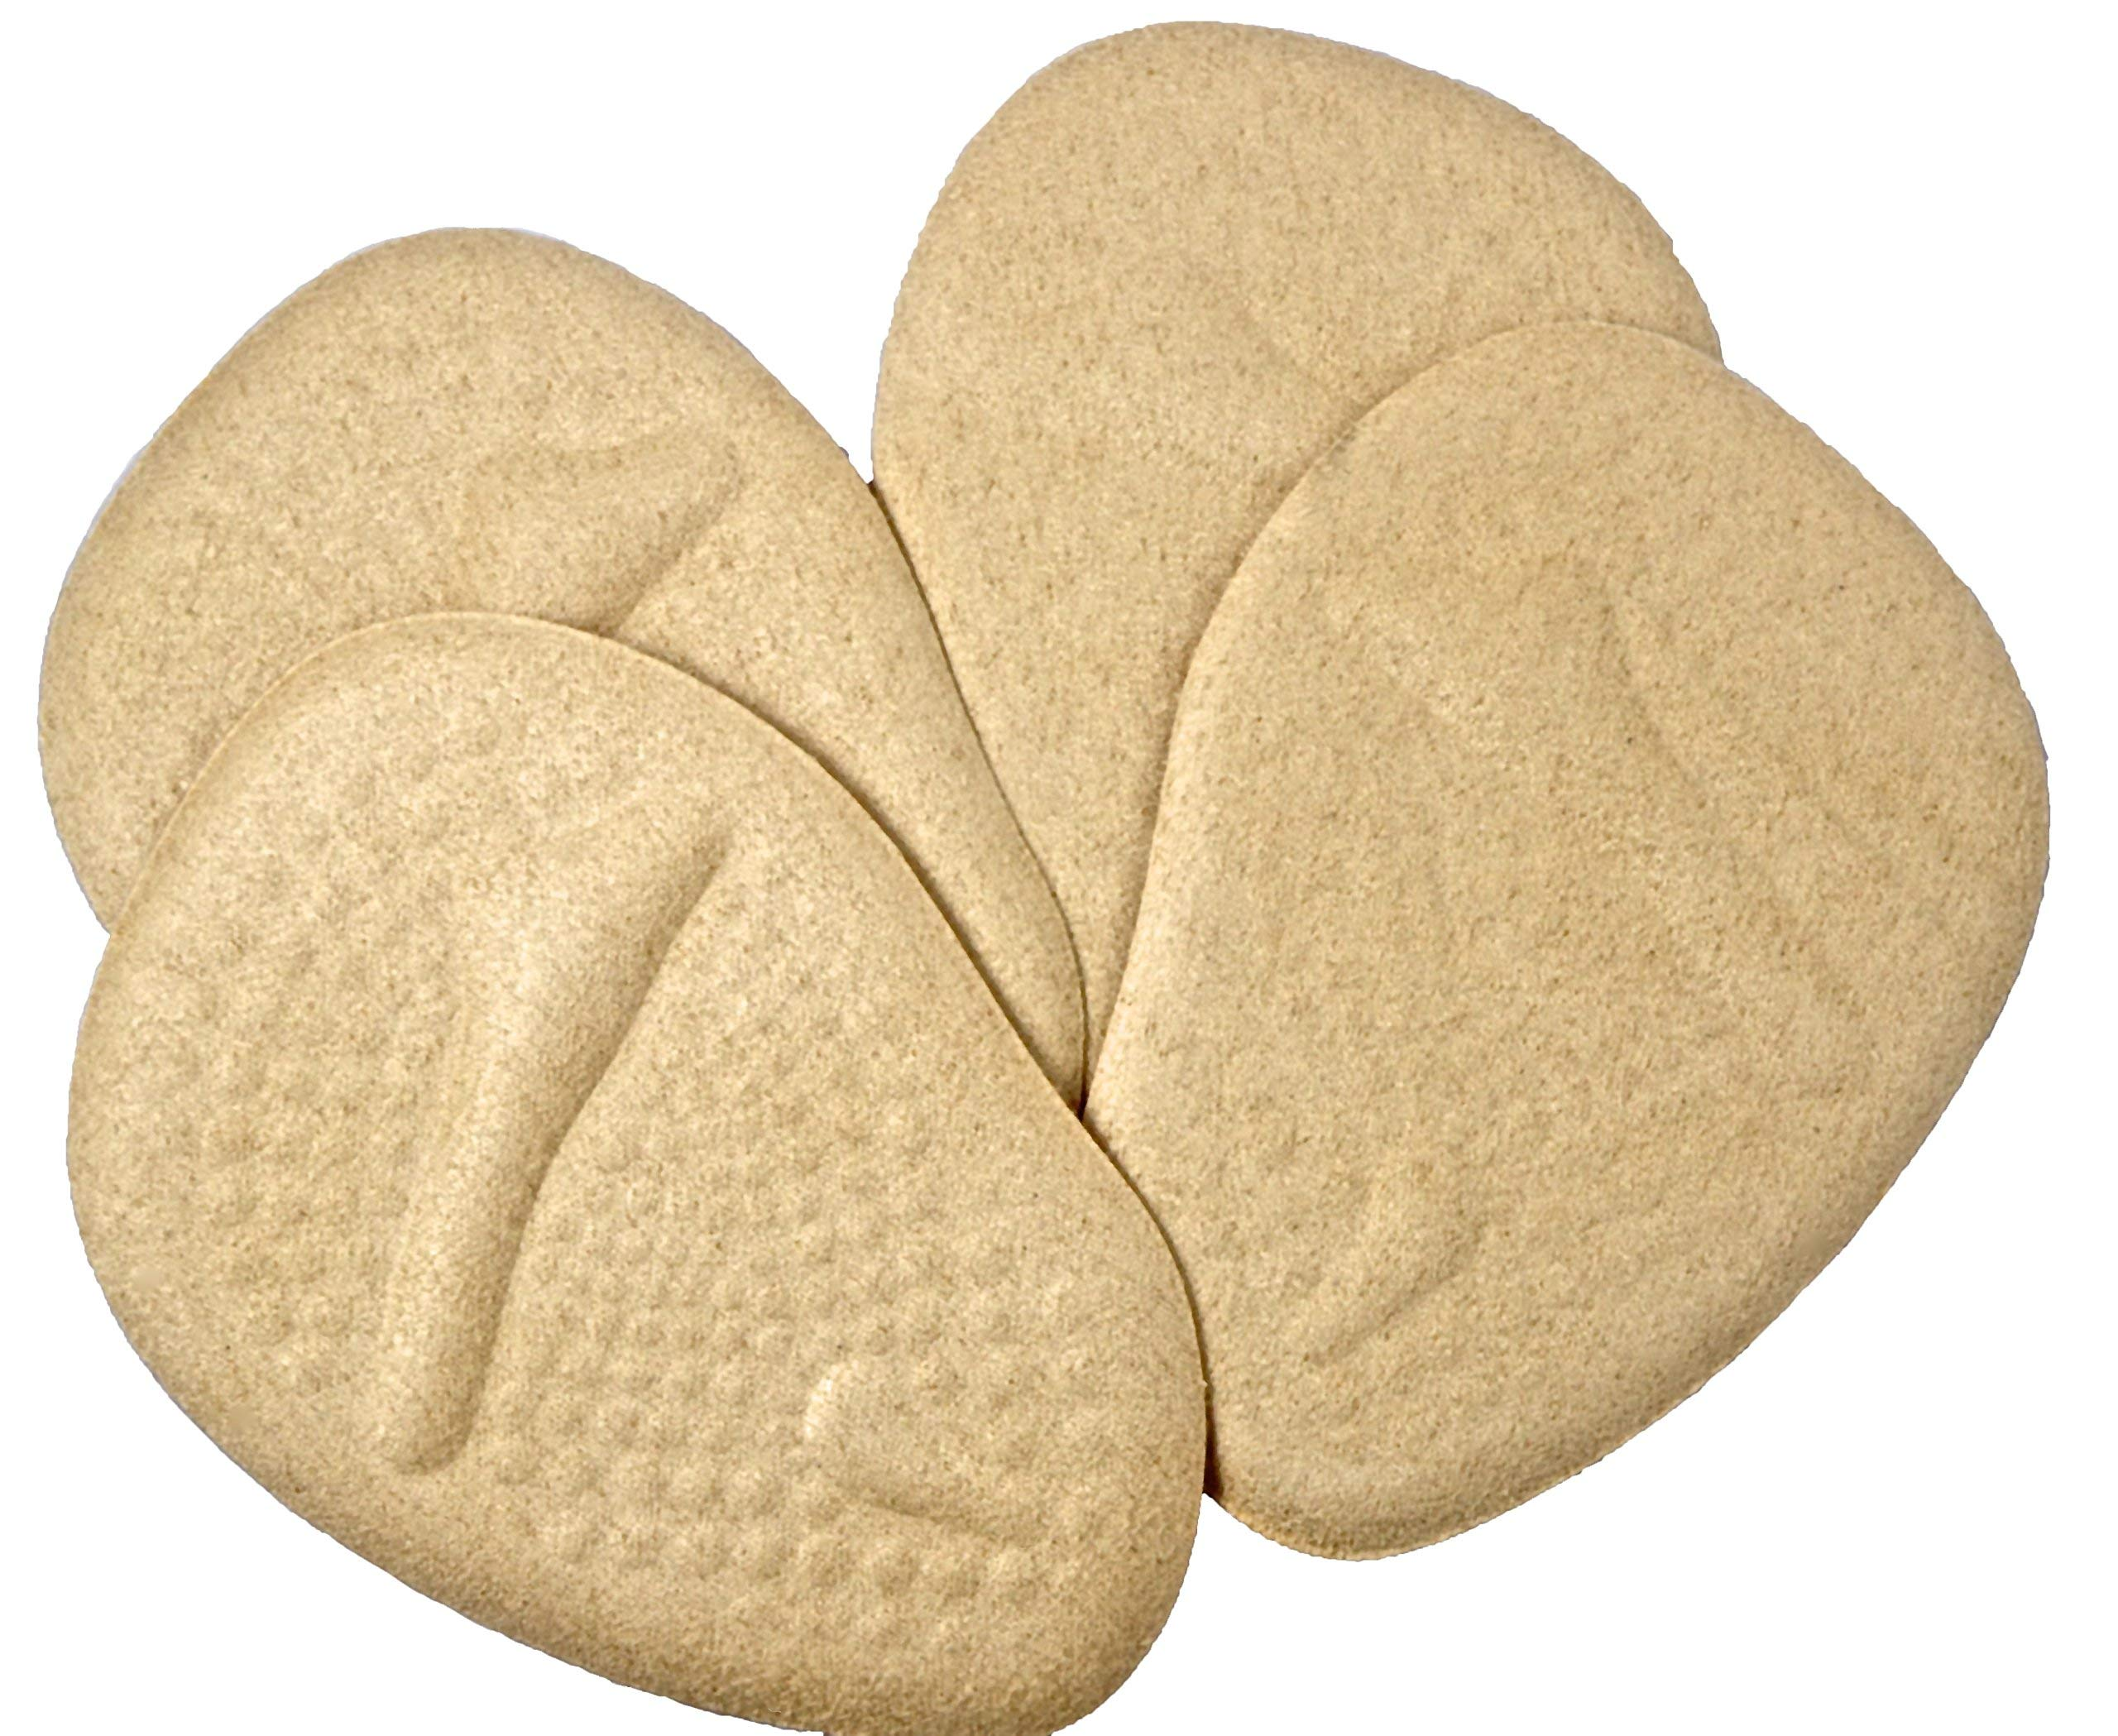 4 Ball of Foot Support Cushion Pad Good Soft Gel Pain Relief Forefoot Inserts High Heel Shoe Insole